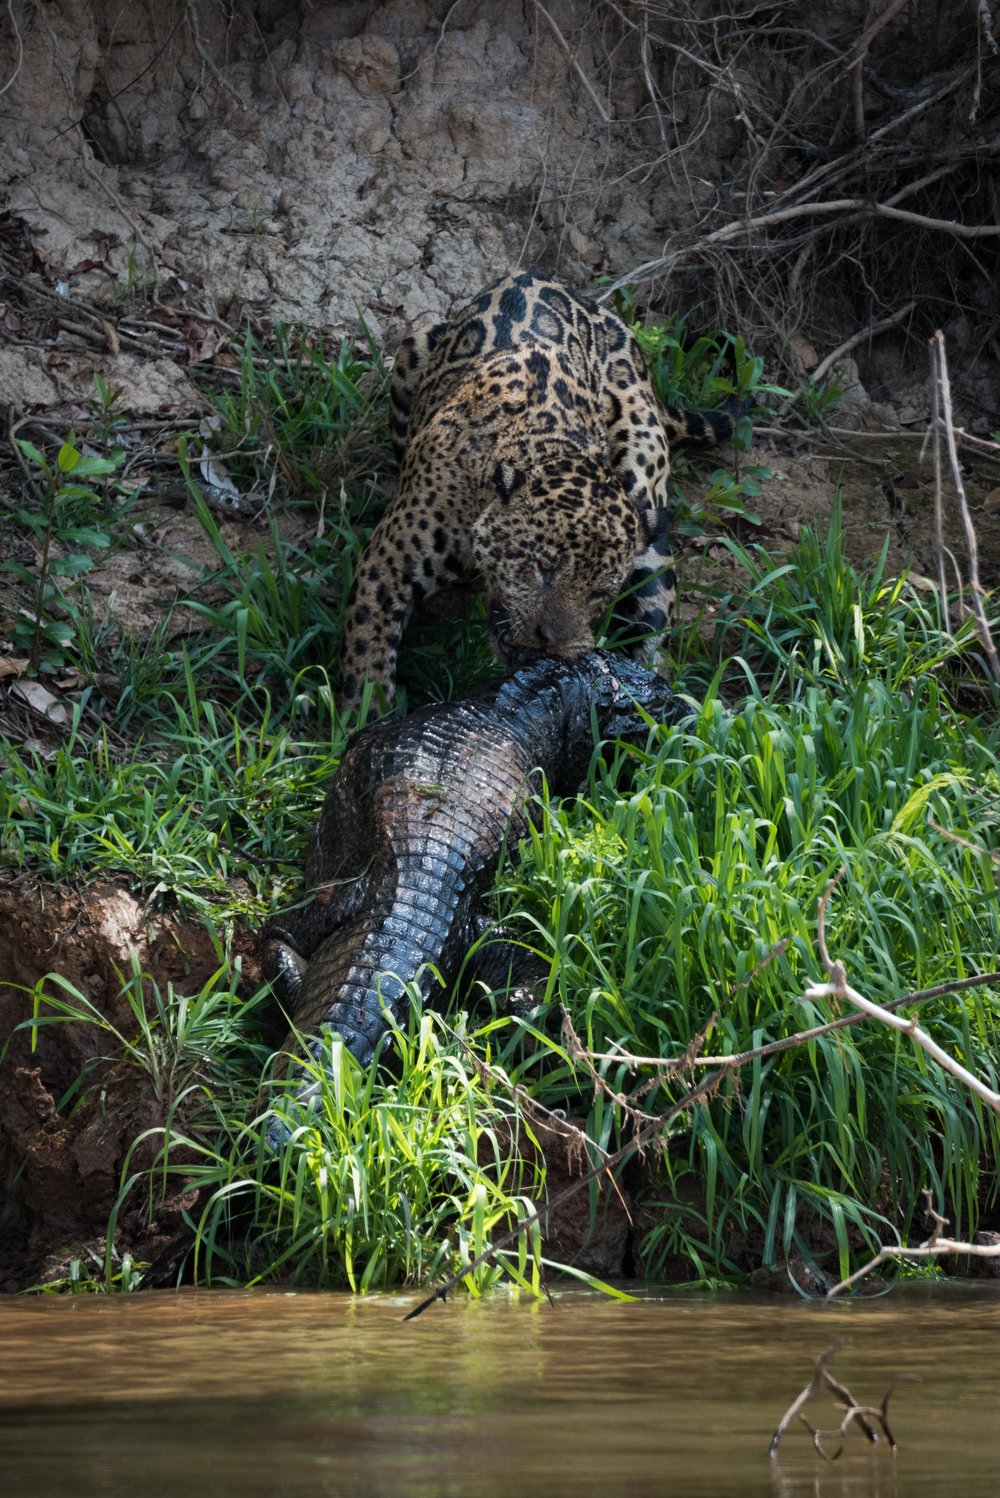 Jaguar hauling yacare caiman up river bank